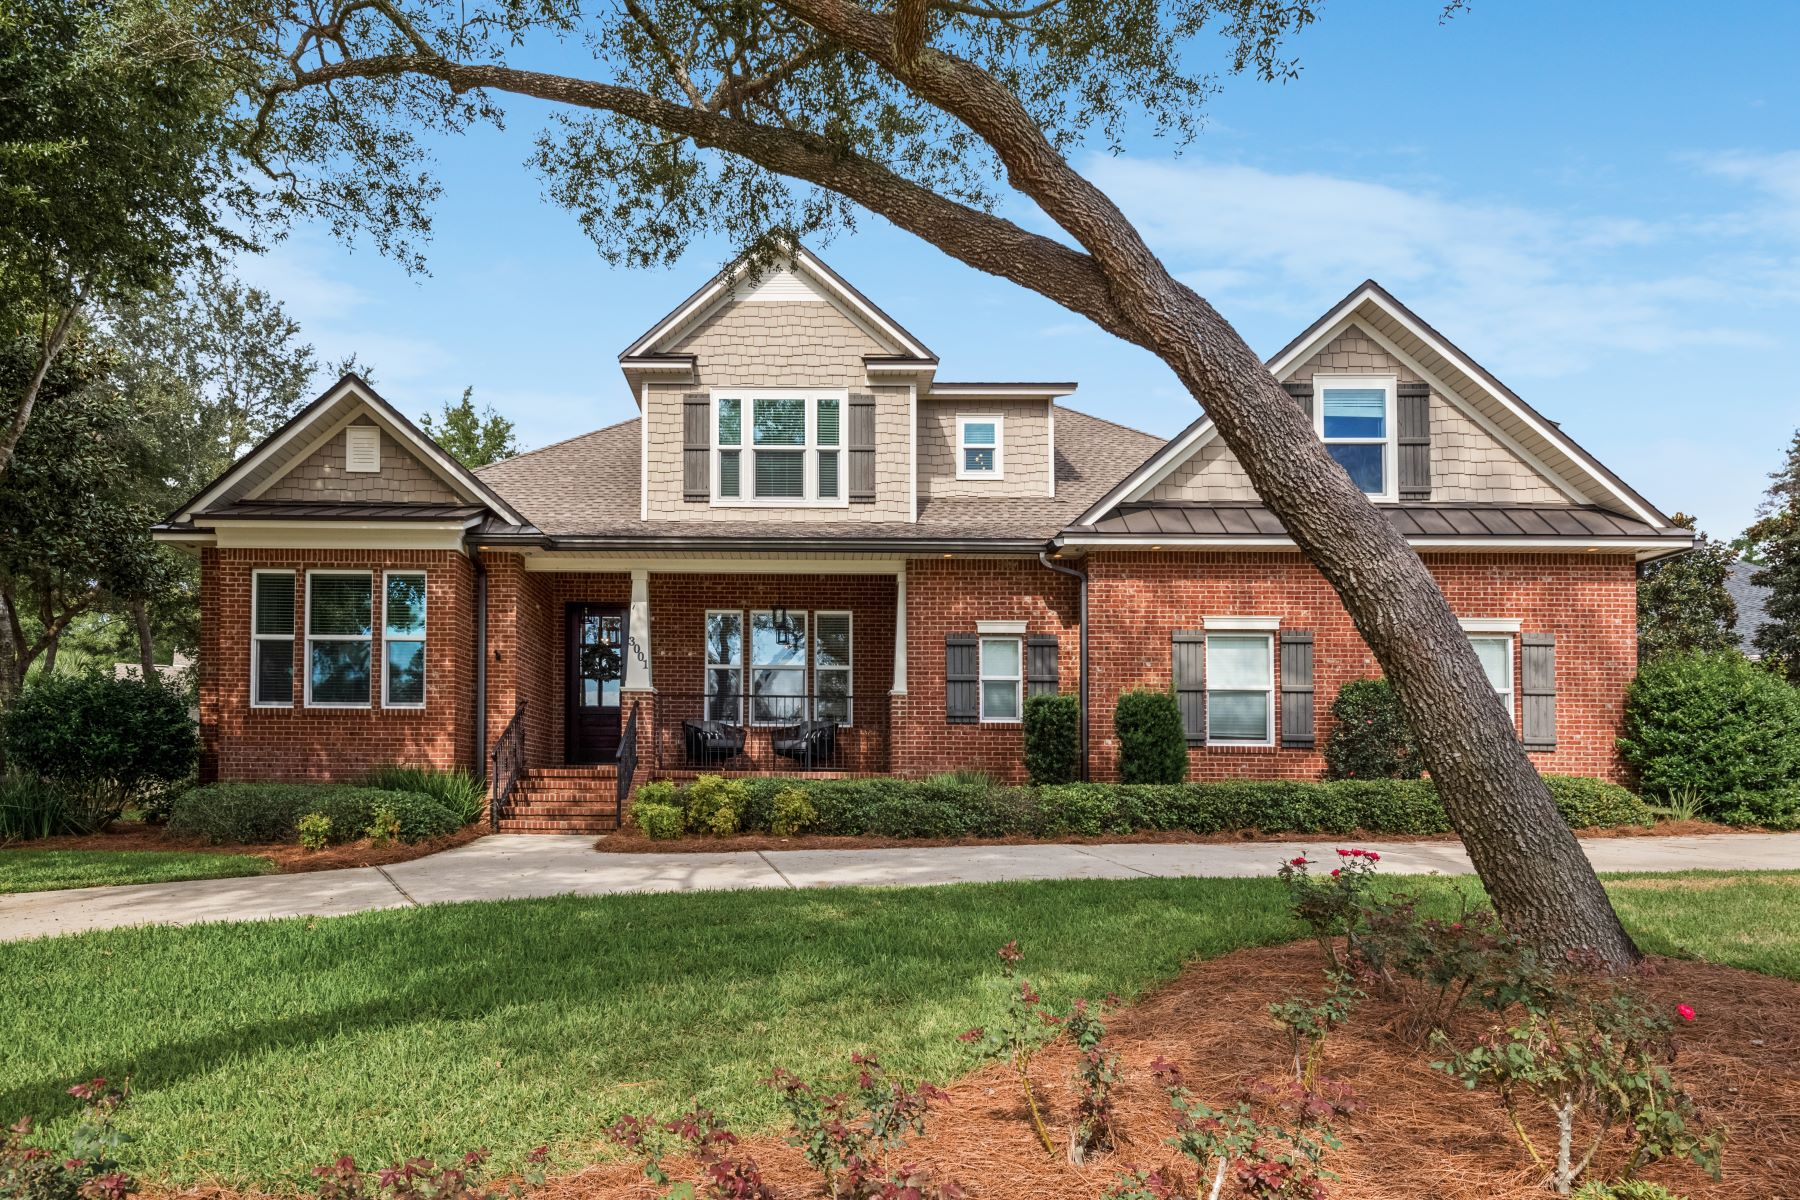 Single Family Homes for Sale at Impeccable Home with Gourmet Kitchen and Saltwater Pool 3001 Stony Creek Cove Niceville, Florida 32578 United States